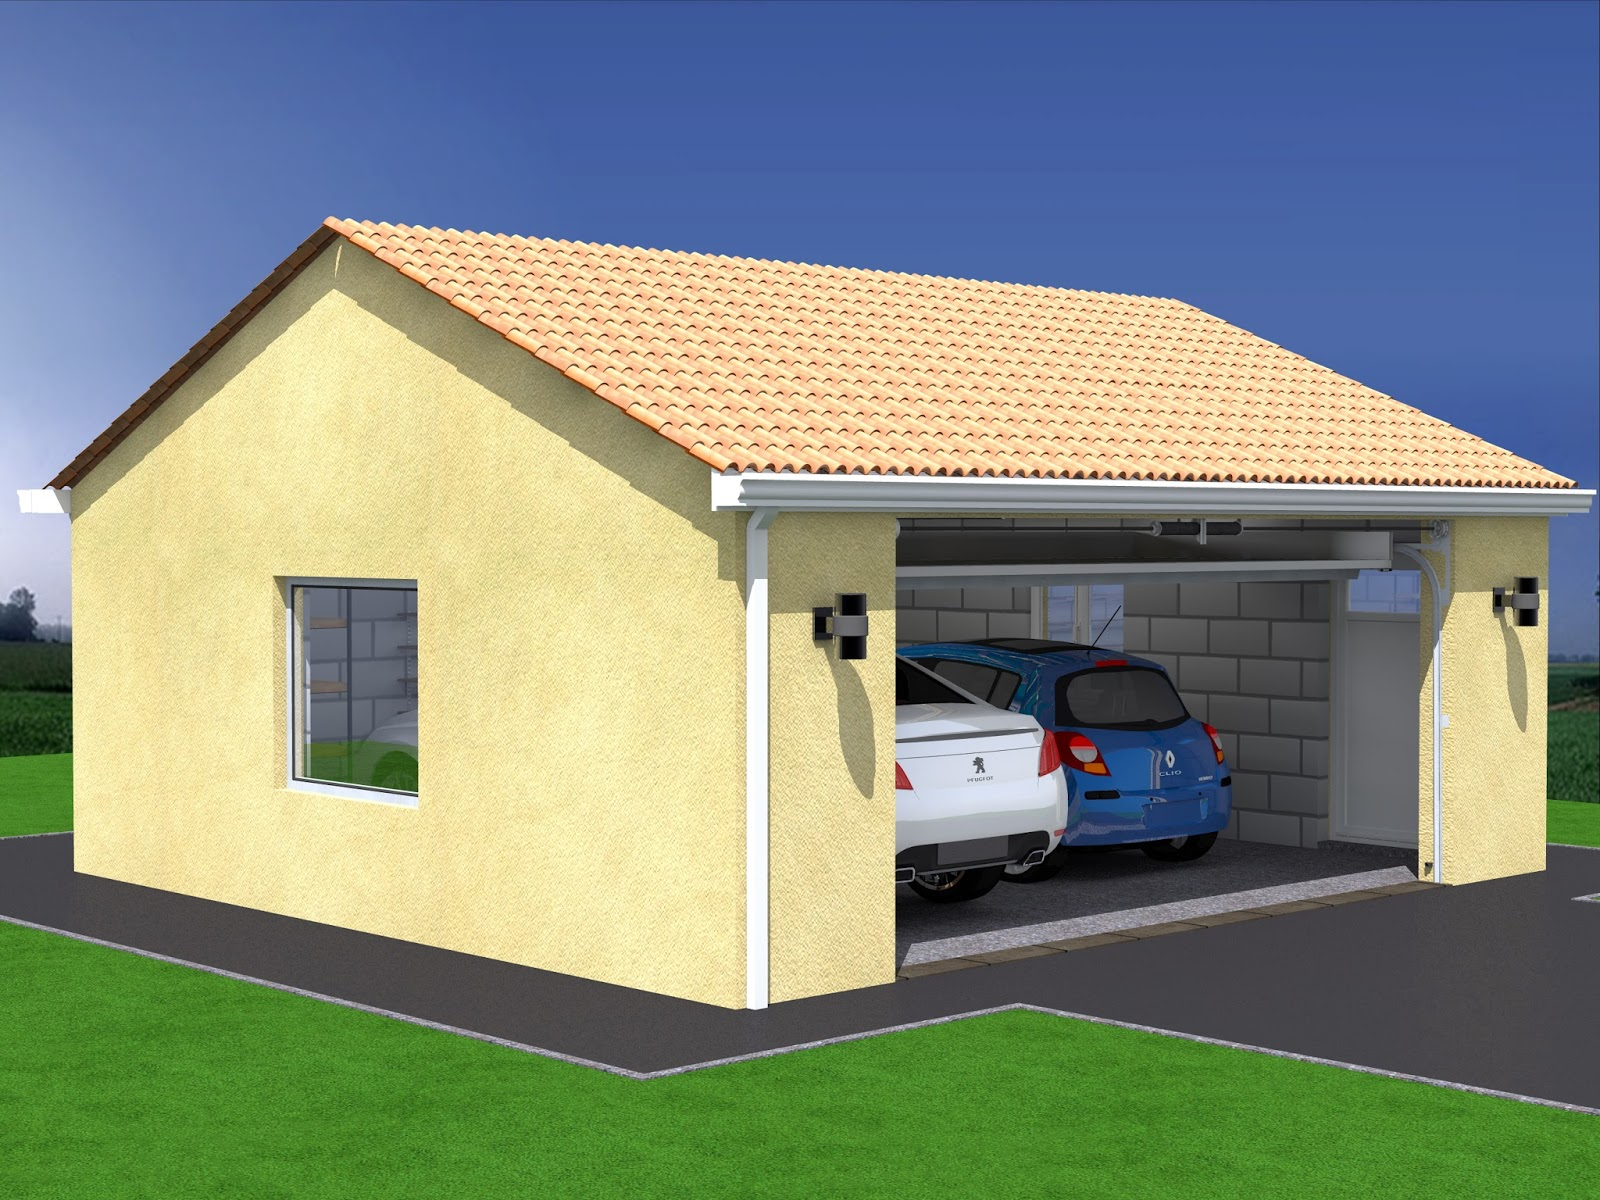 Projet de construction de garage double - Porte garage double ...